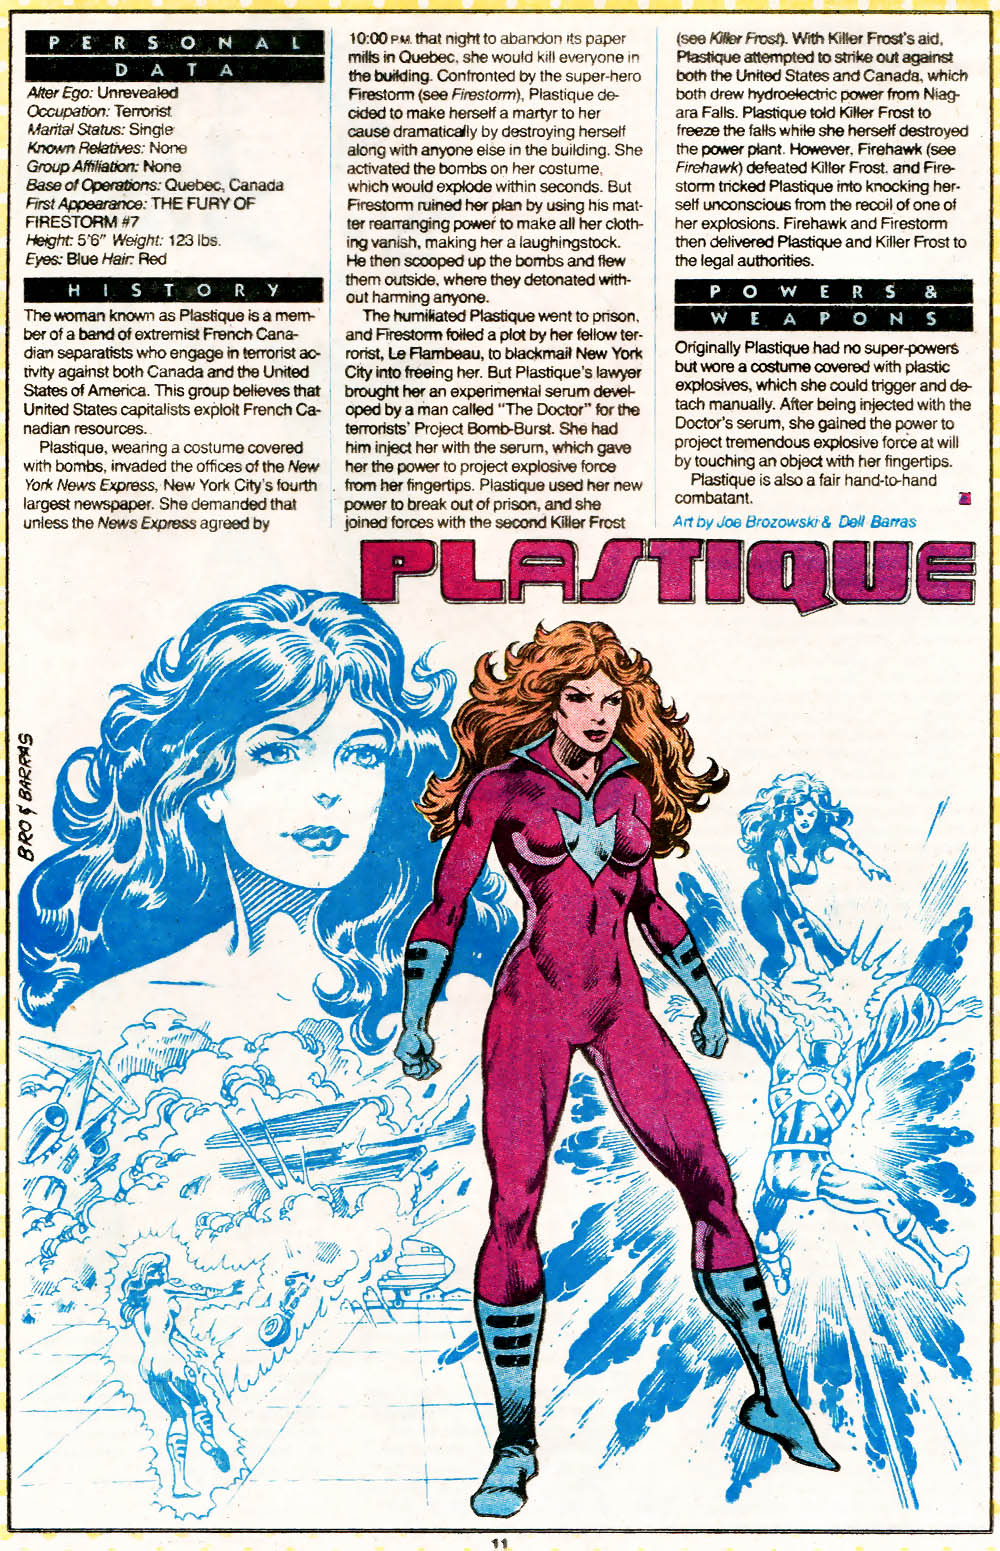 Plastique from Who's Who